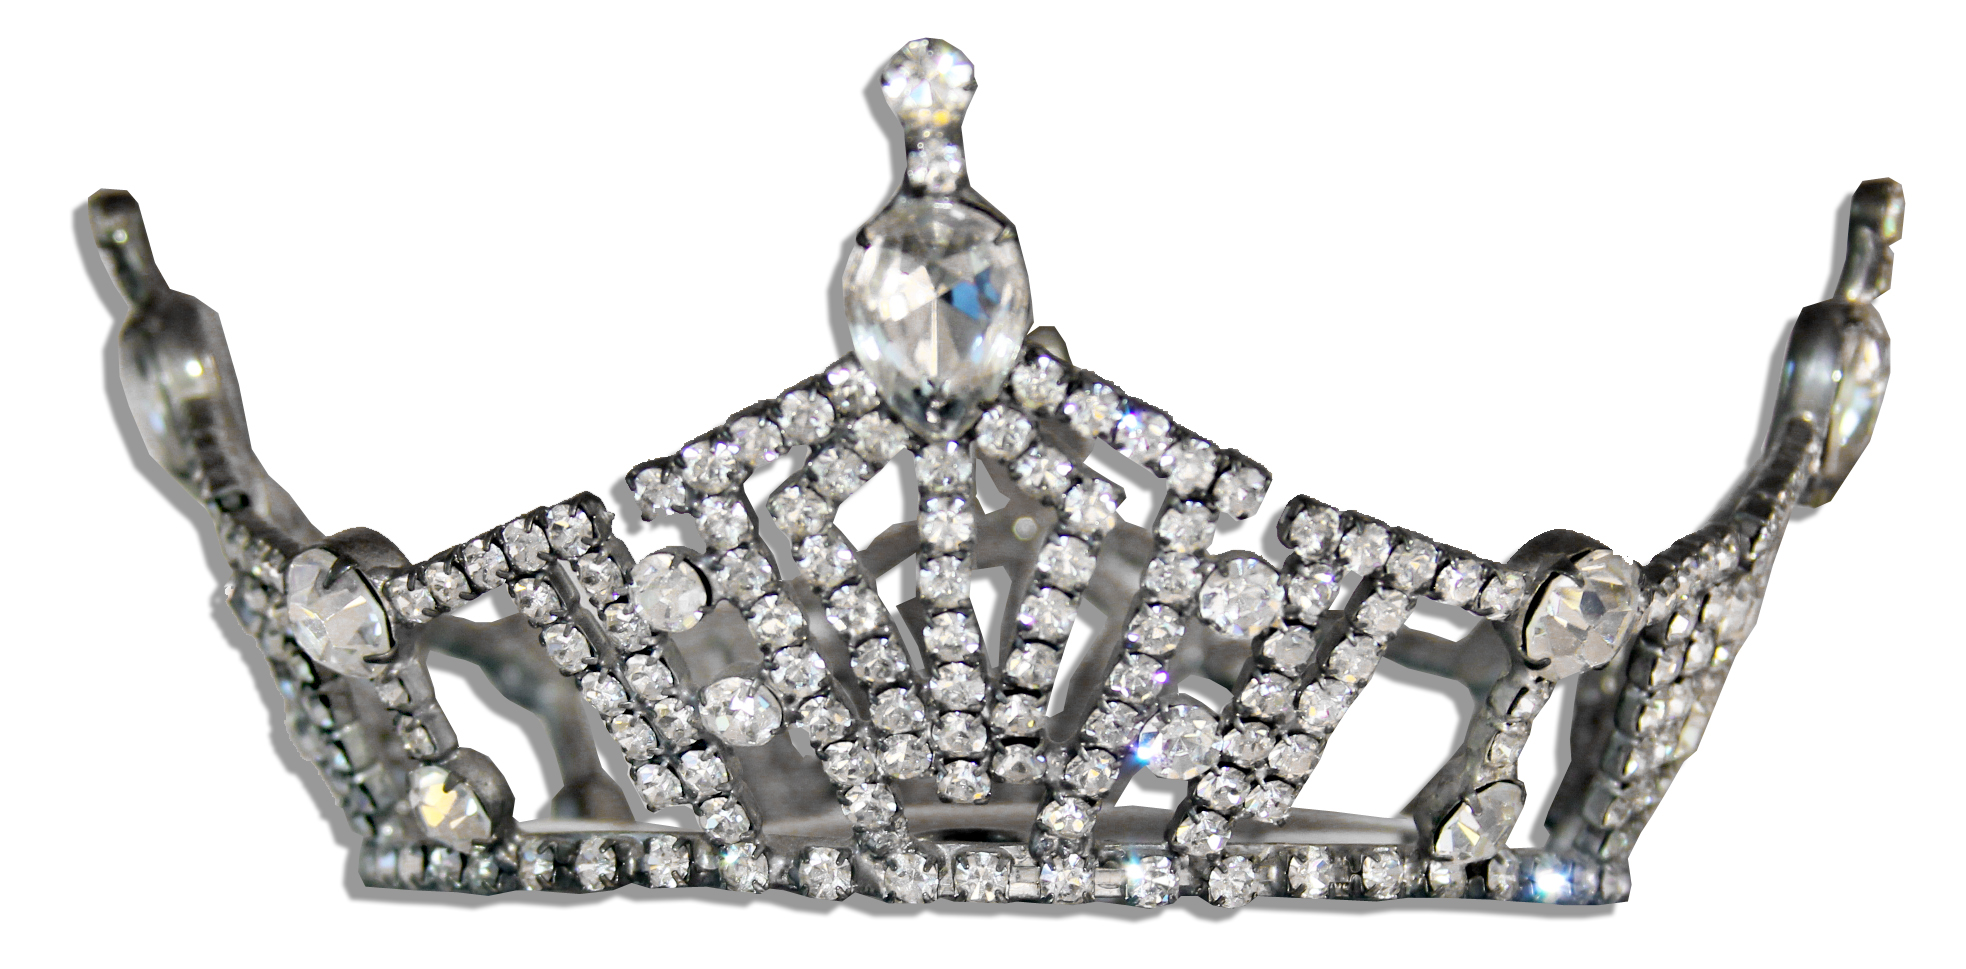 Pageant Crown Clip Art Pageant Crown Clip Art Pageant Crown Clip Art